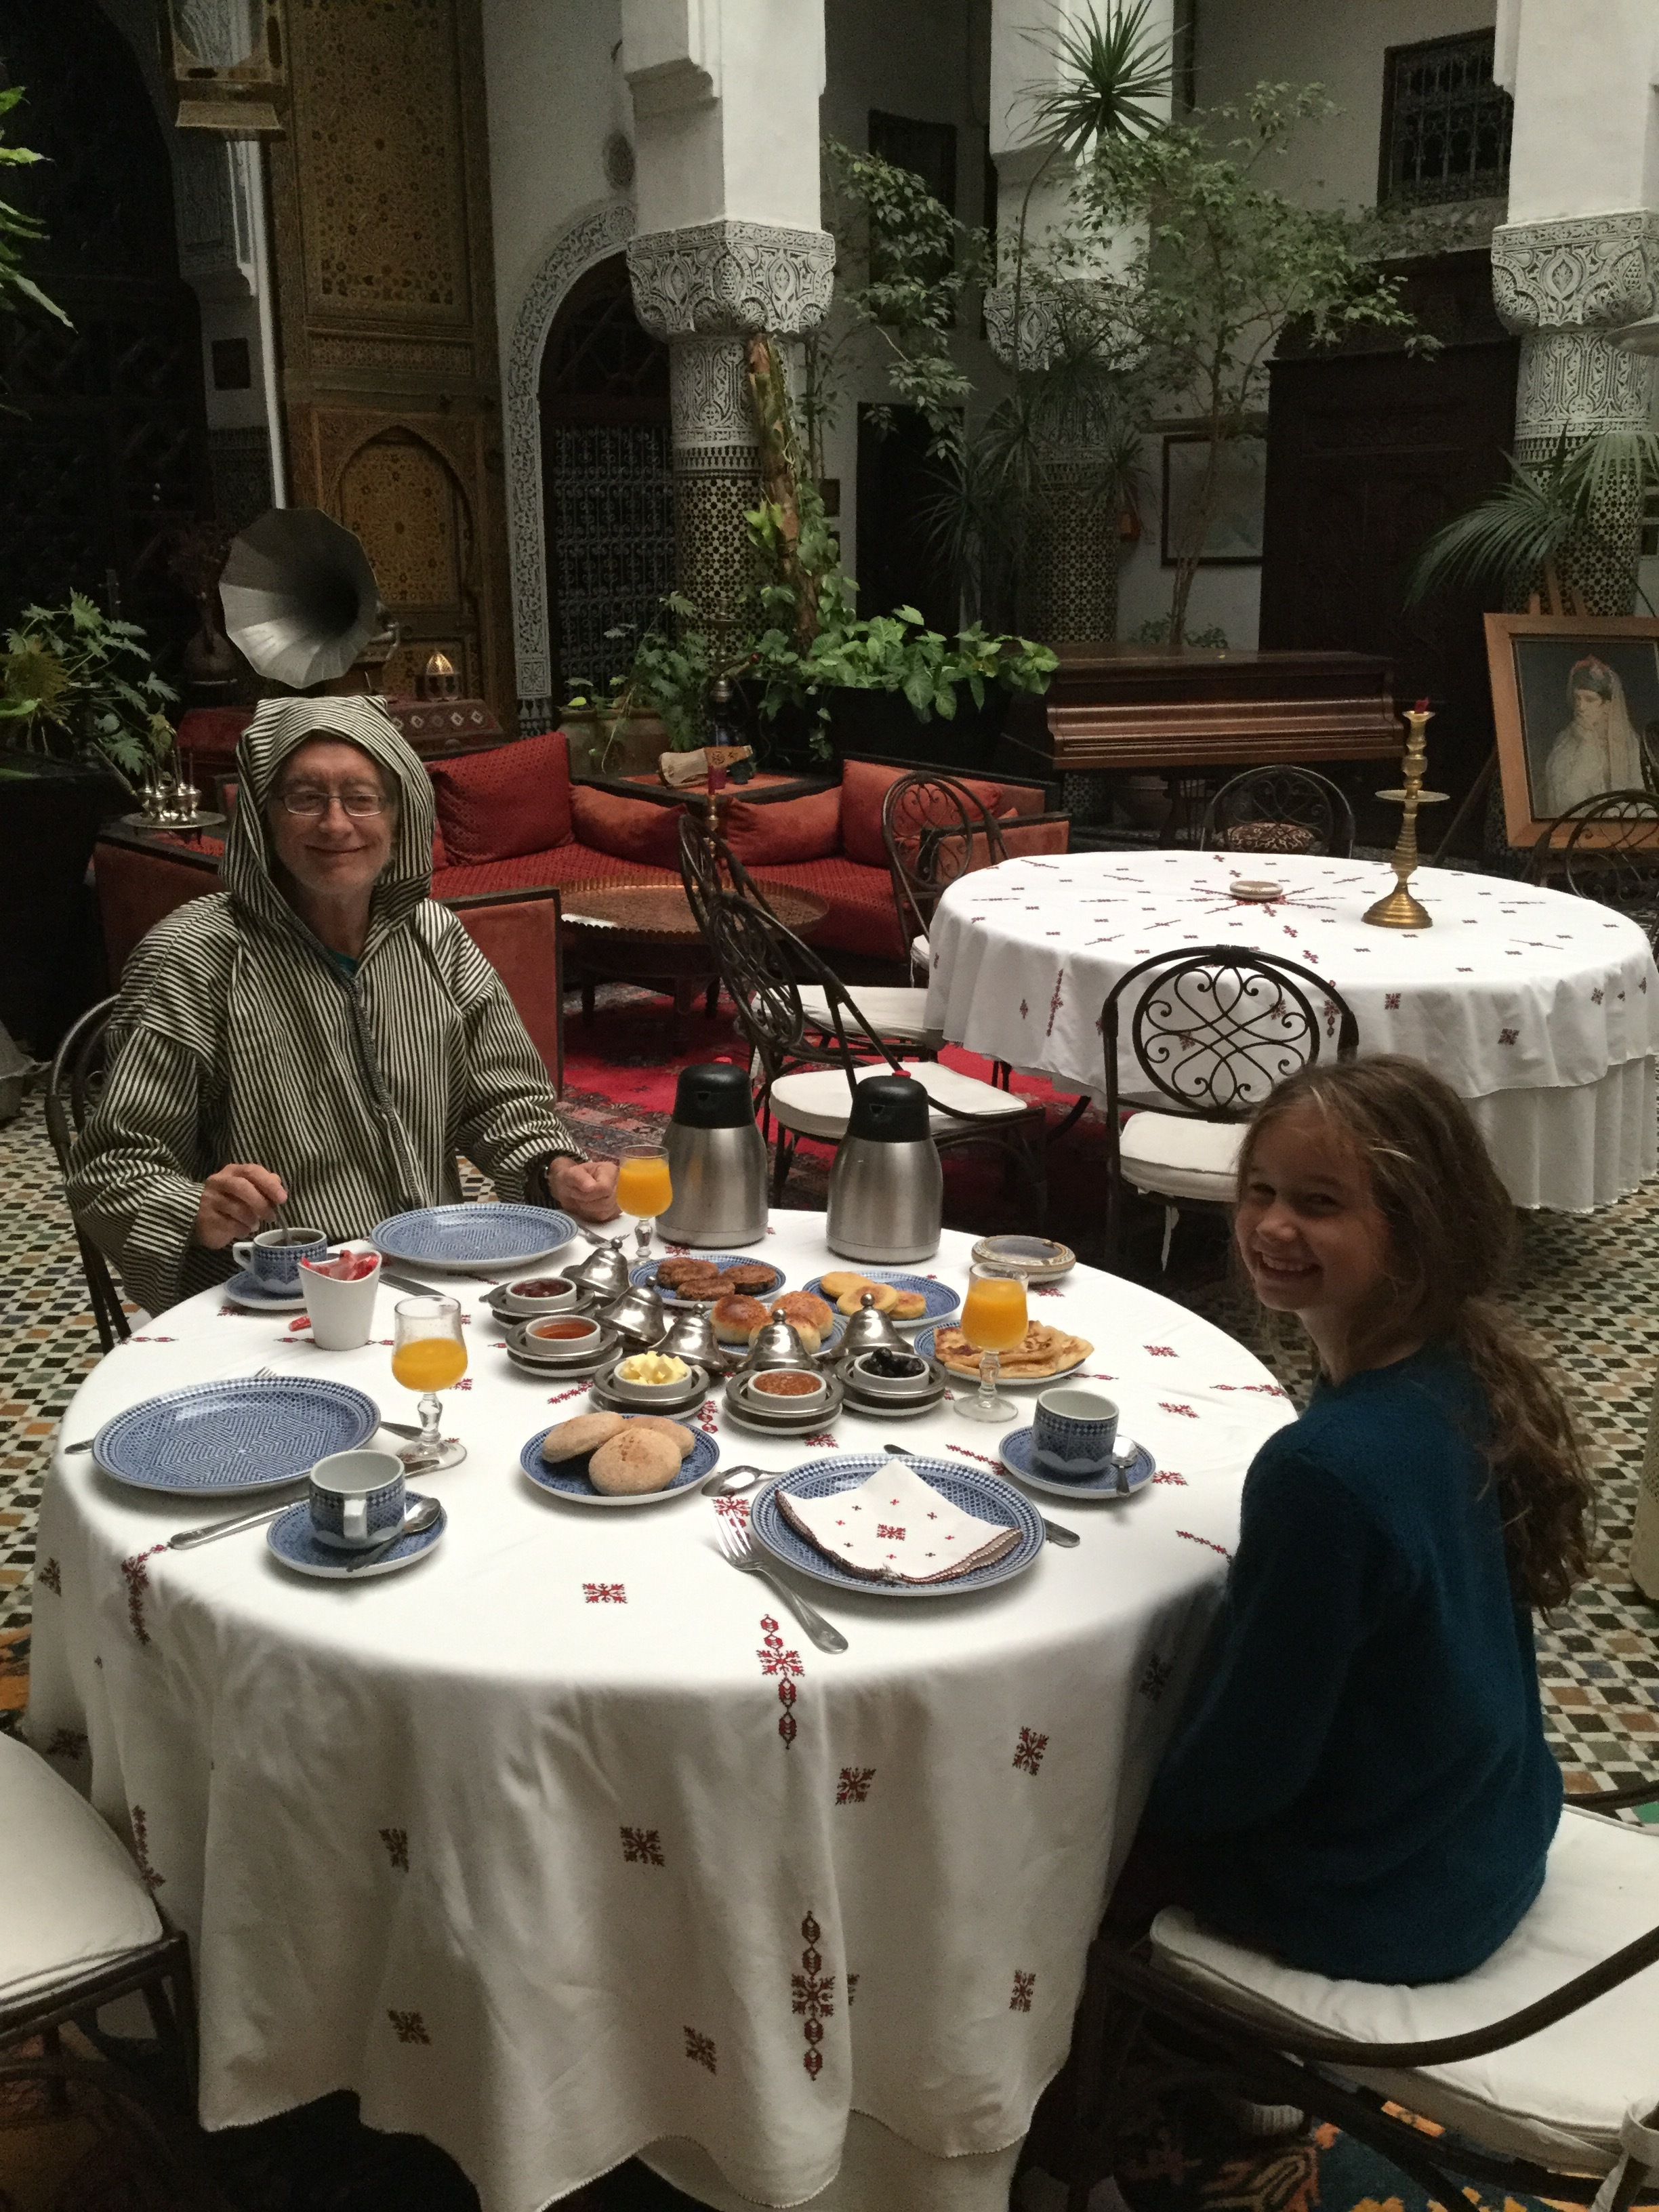 Dante and Lili at breakfast at our riad.